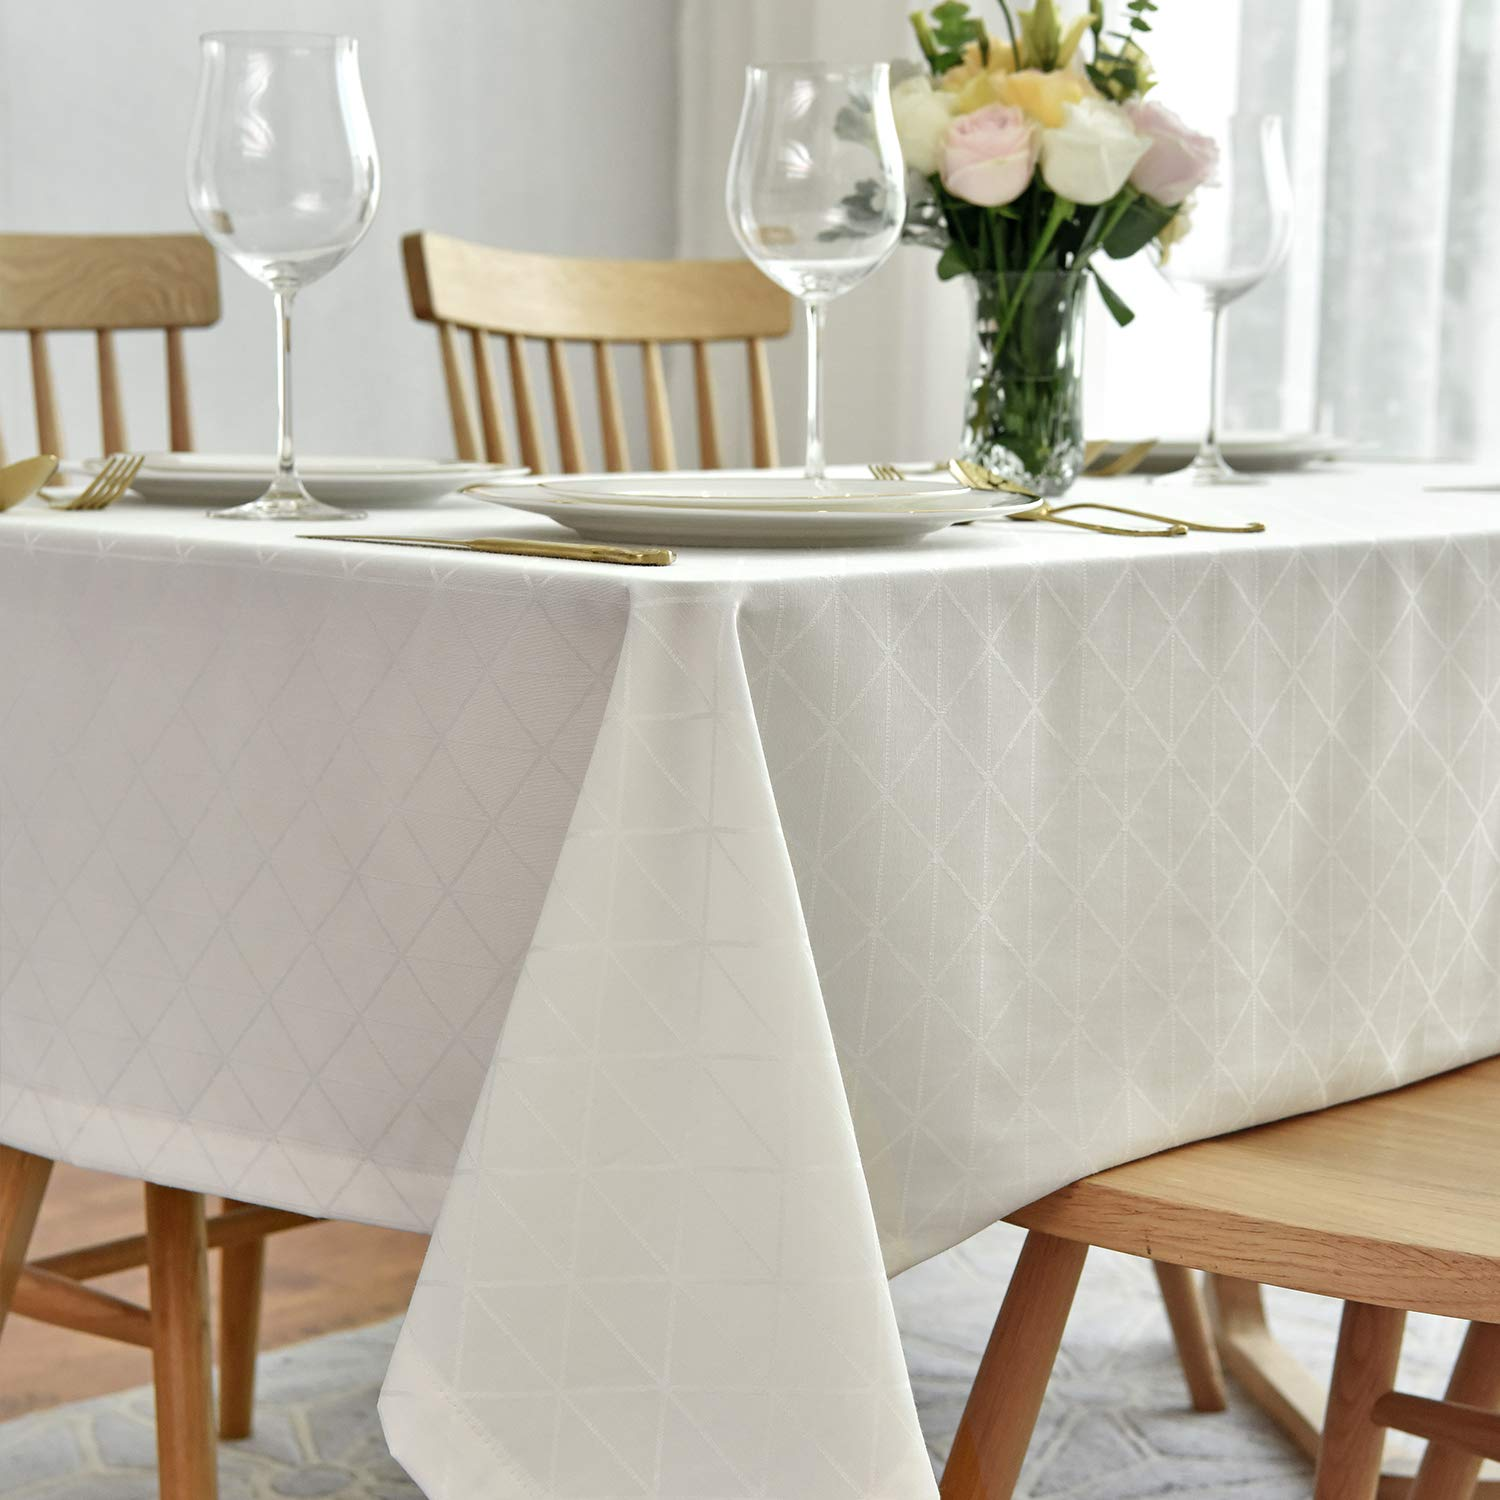 maxmill Jacquard Poly-Cotton Tablecloth Geometric Pattern SpillProof, Water Resistant Wide Hem Heavy Weight Soft Table Cloth for Kitchen Dining Tabletop Decoration Rectangle, Cream, 58x84 Inch by maxmill